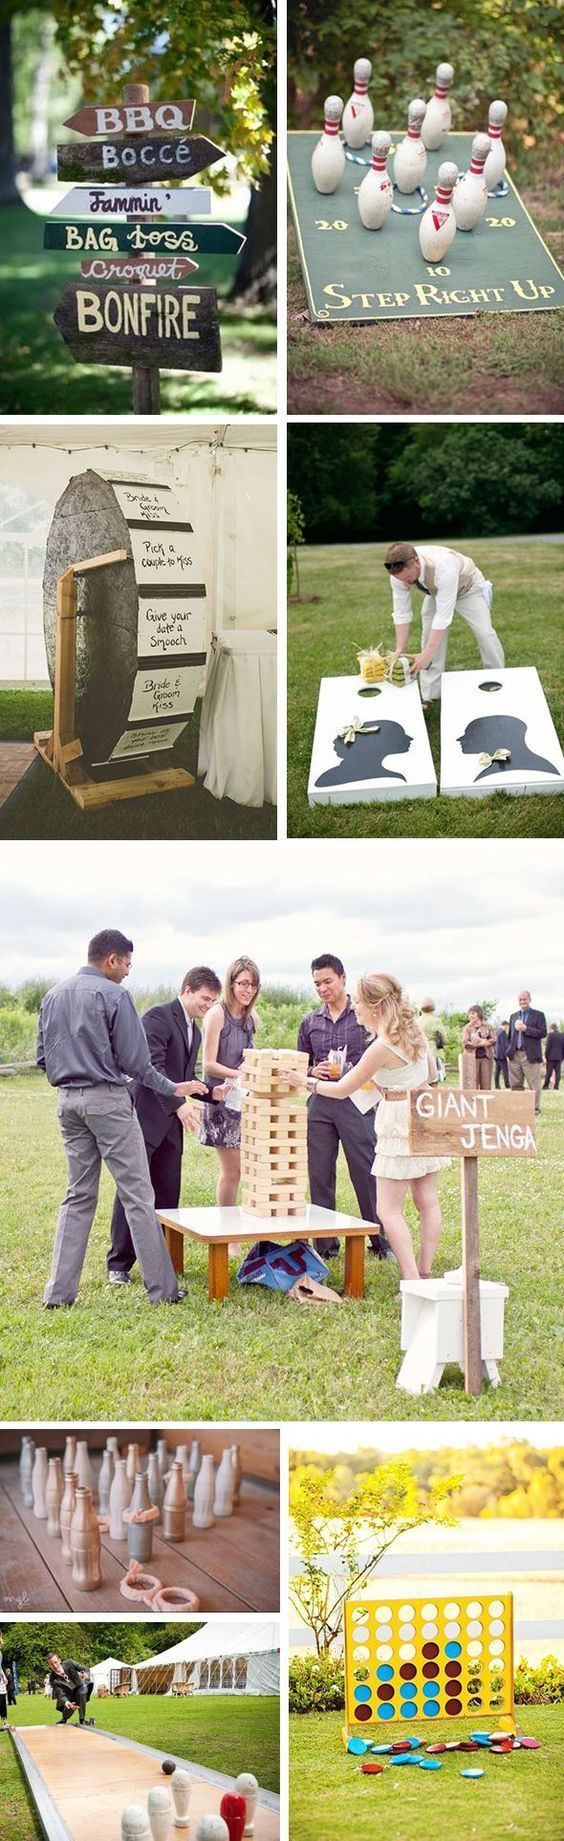 45 Fun Outdoor Wedding Reception Lawn Game Ideas | Wedding Ideas ...